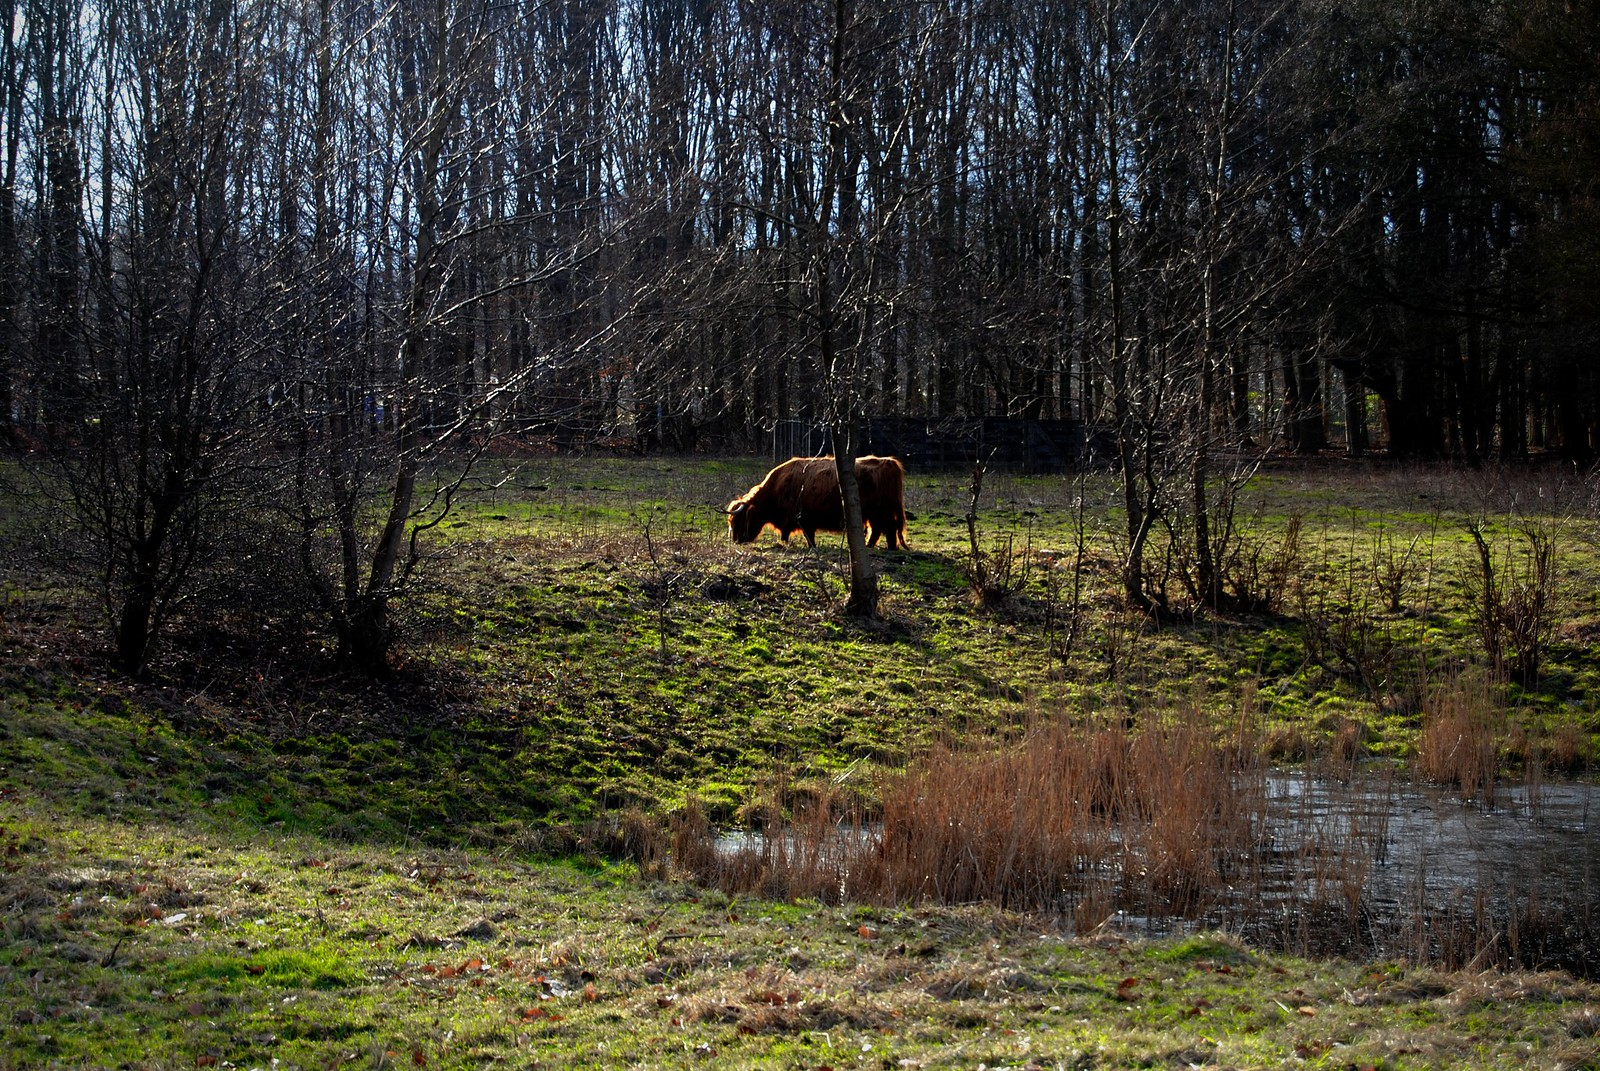 A Scottish Highlander in the Amsterdamse Bos.